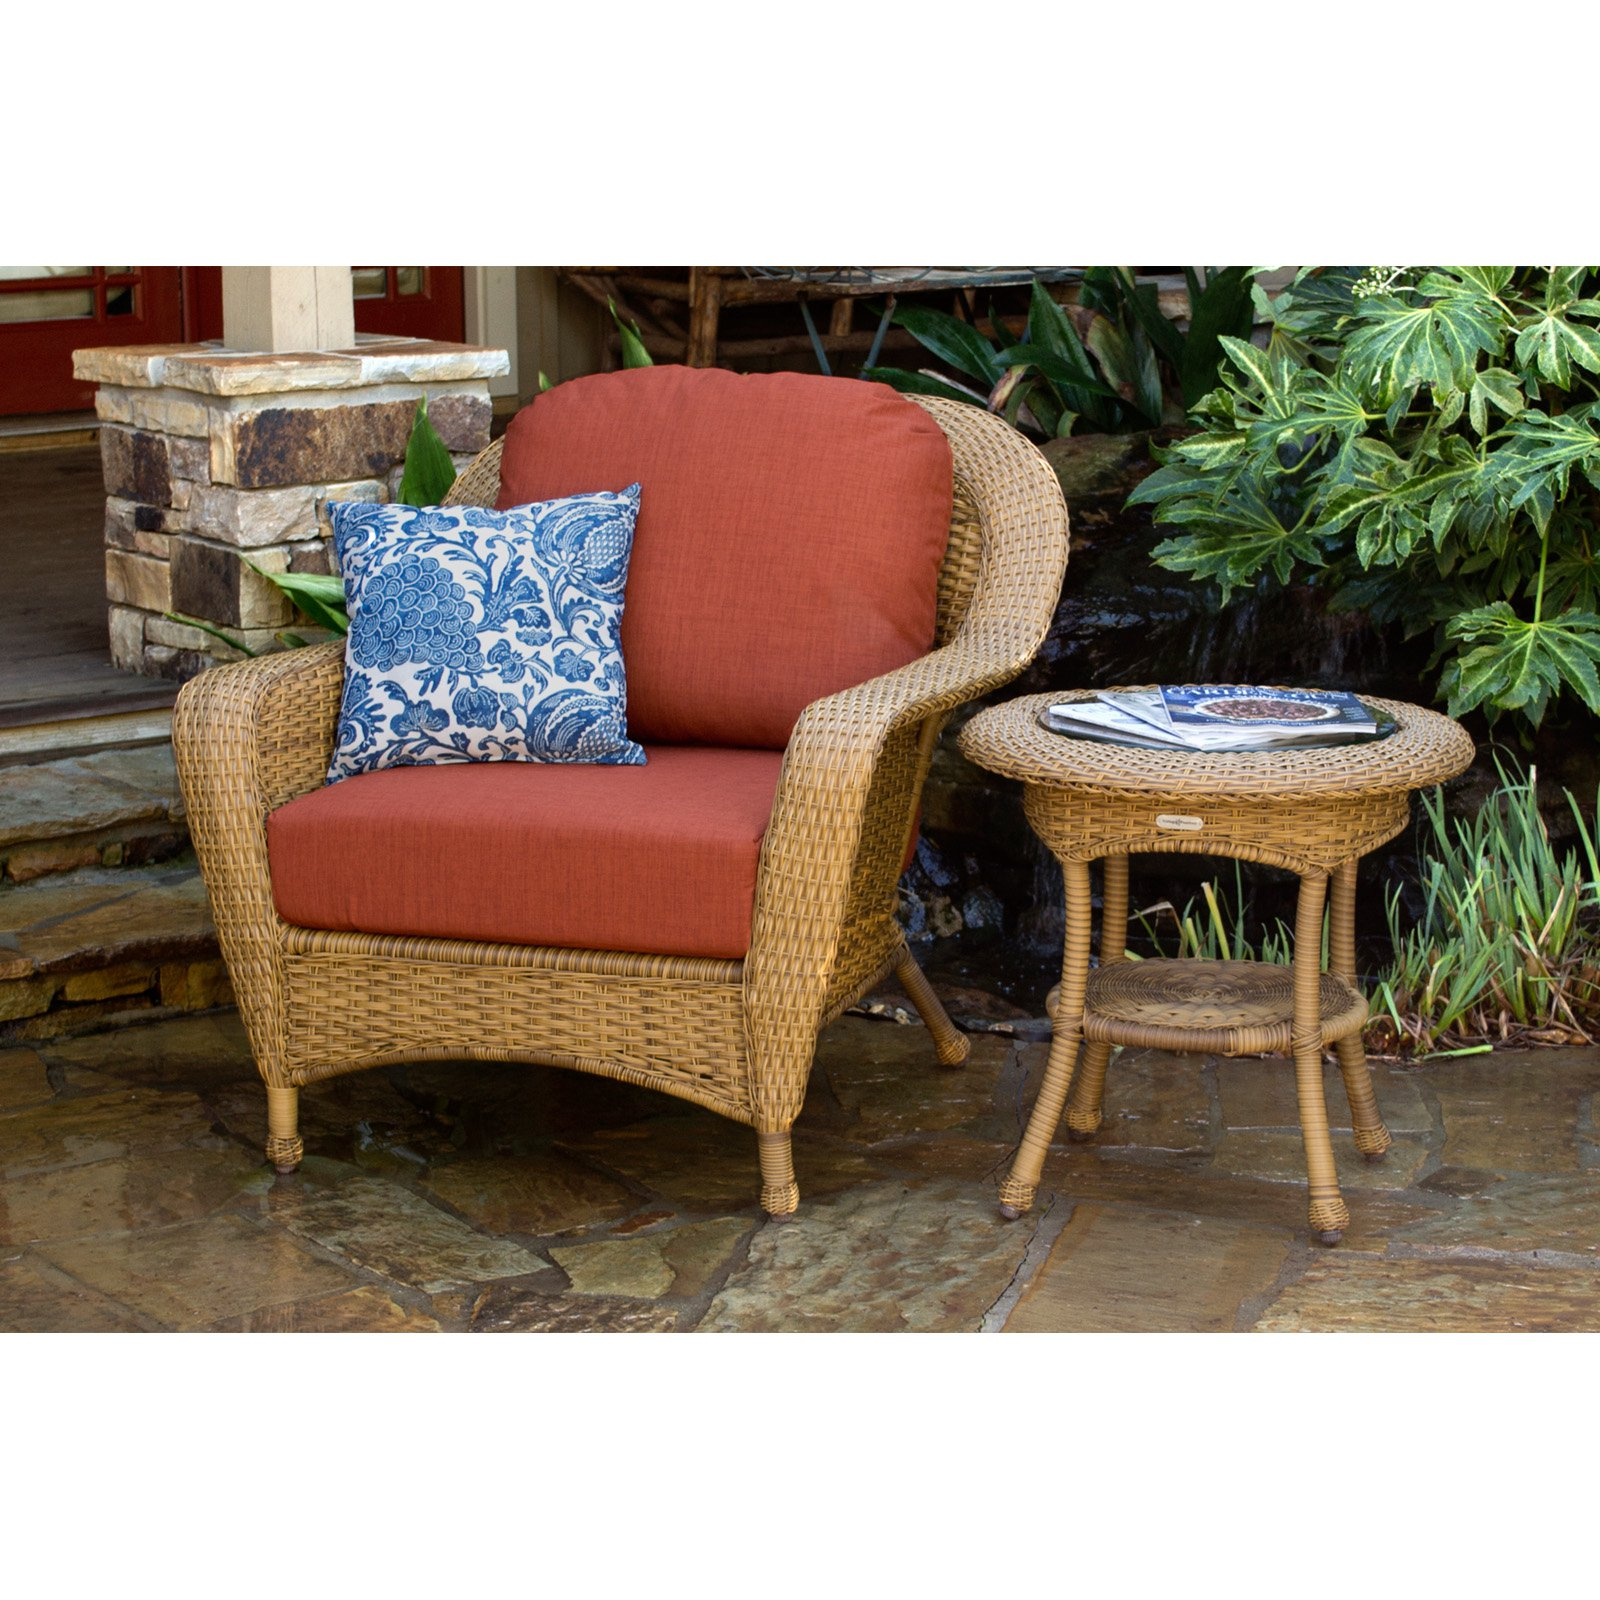 Tortuga Sea Pines 2 pc. Chair with Side Table Set